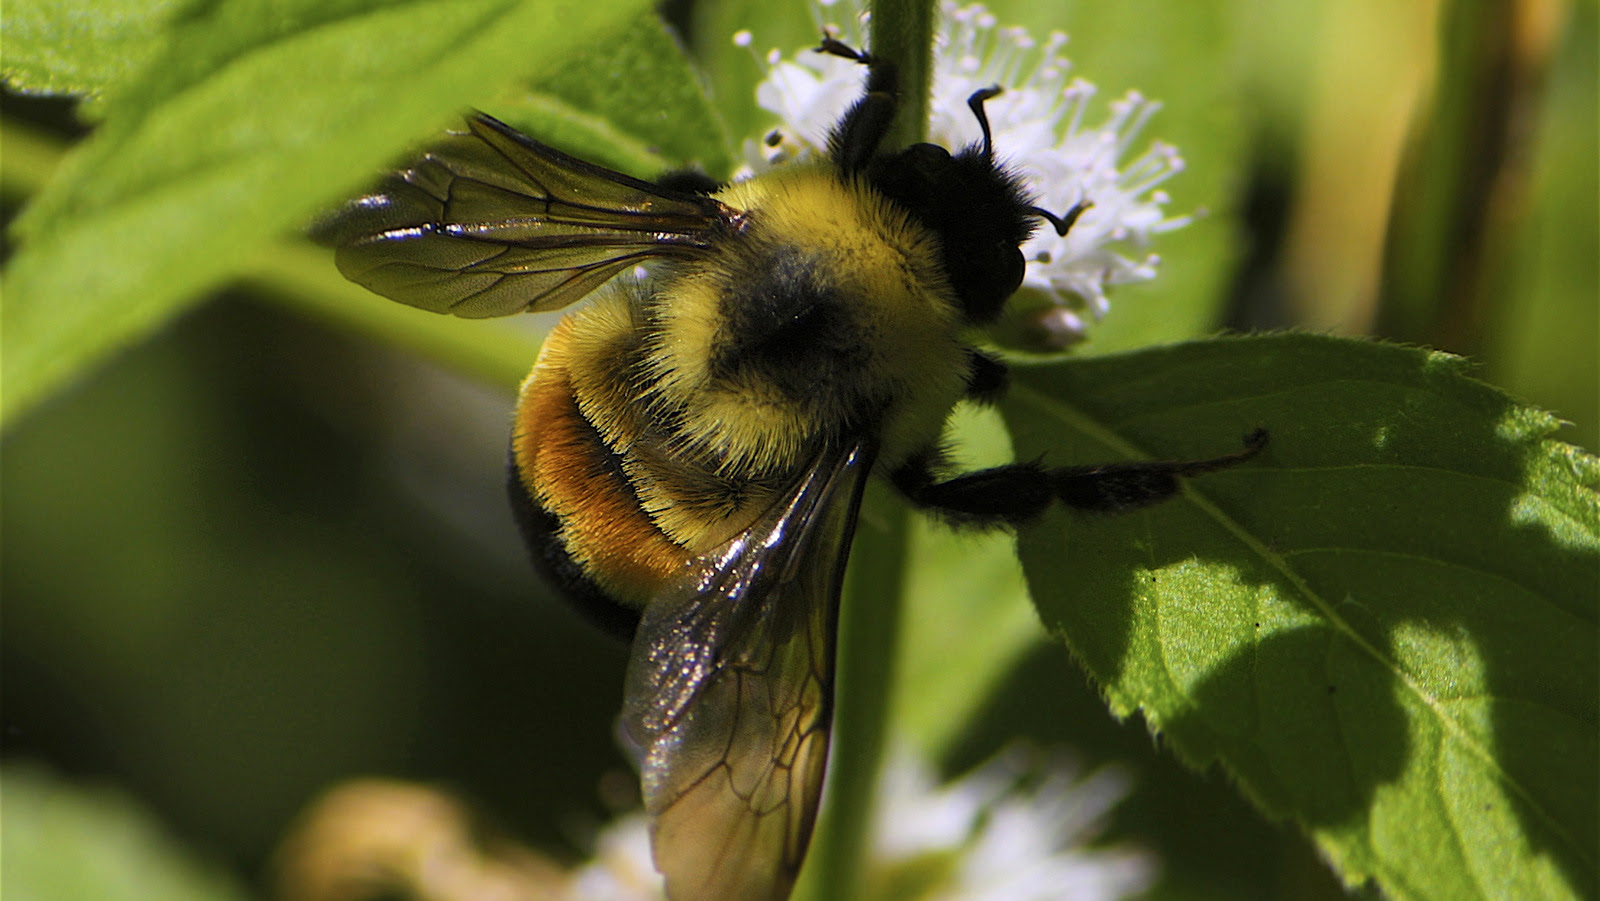 The rusty-patched Bumble bee (Bombus affinis) has become the first bee species to be officially placed on the endangered species list (Photo: Photo: Dan Mullen/Flickr)